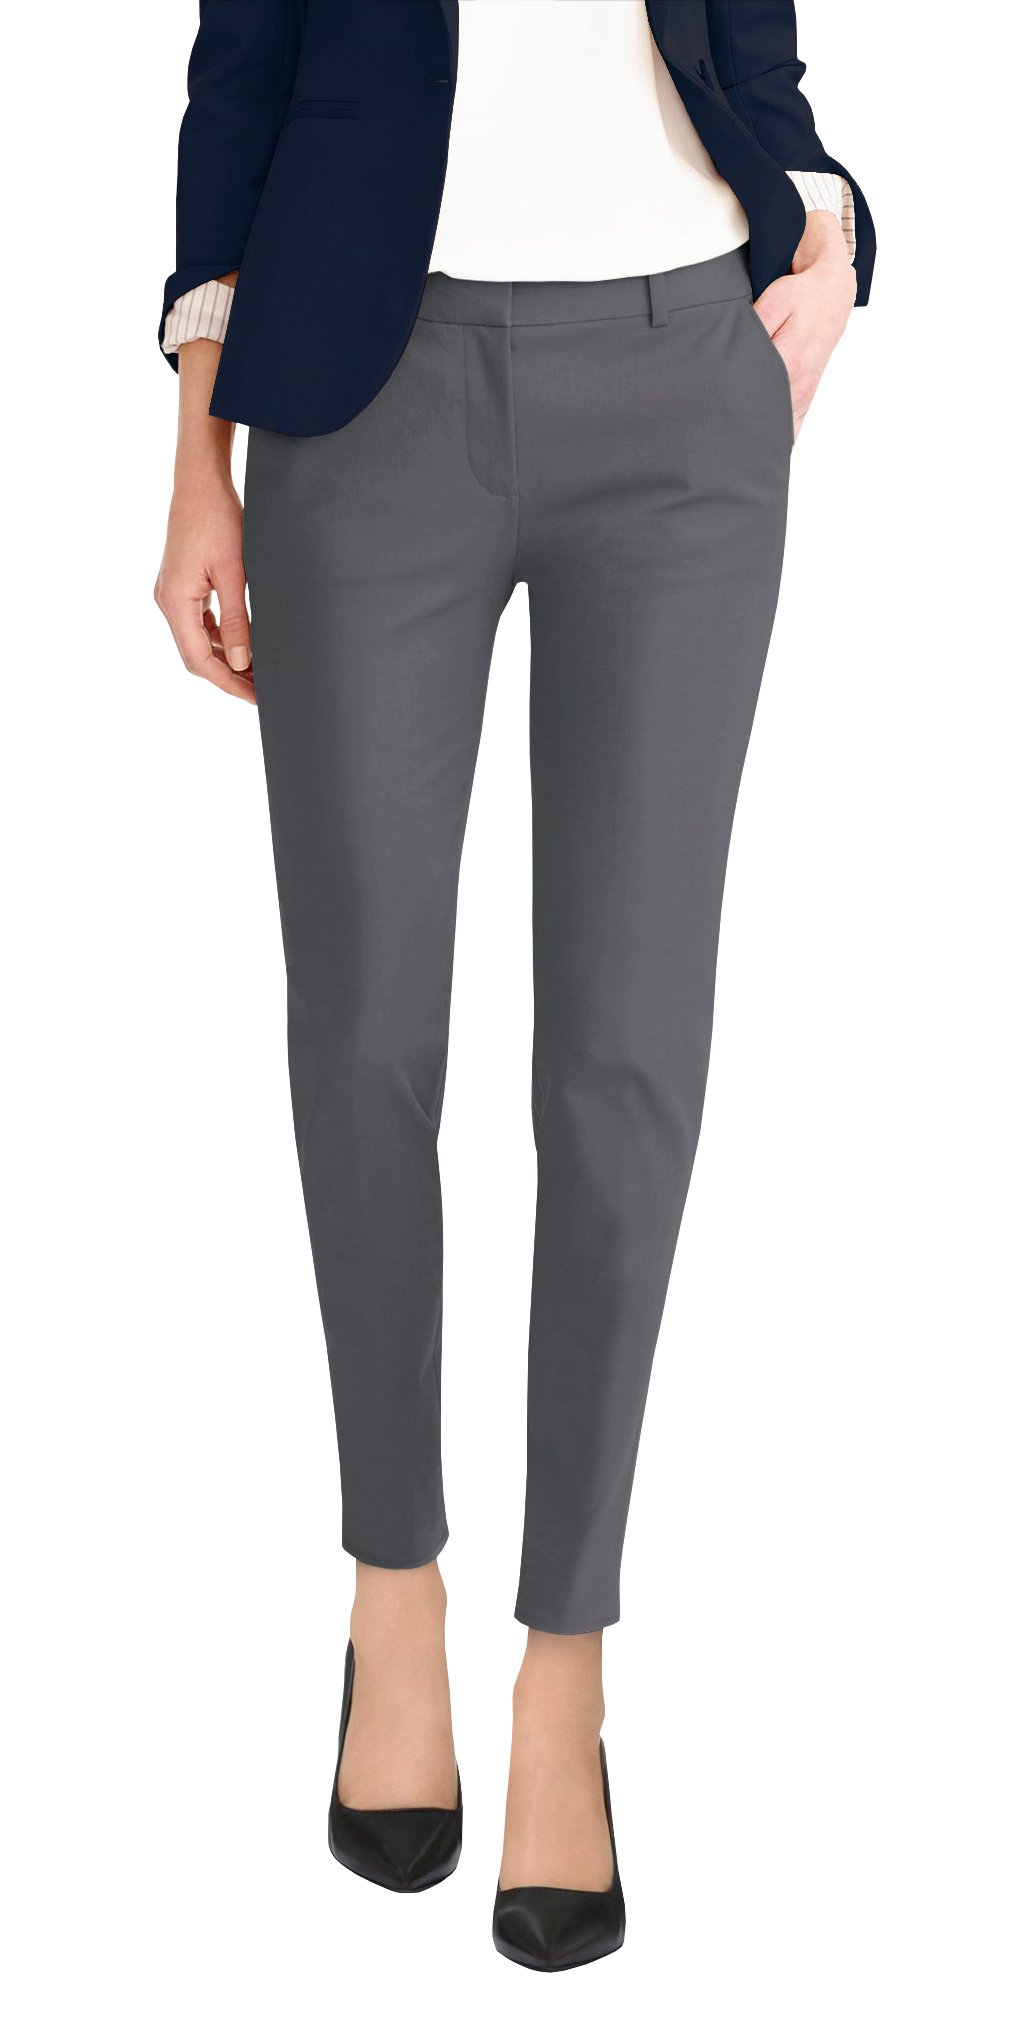 HyBrid & Company Super Comfy Womens Flat Front Stretch Trousers Pants PW31200TT Charcoal 20